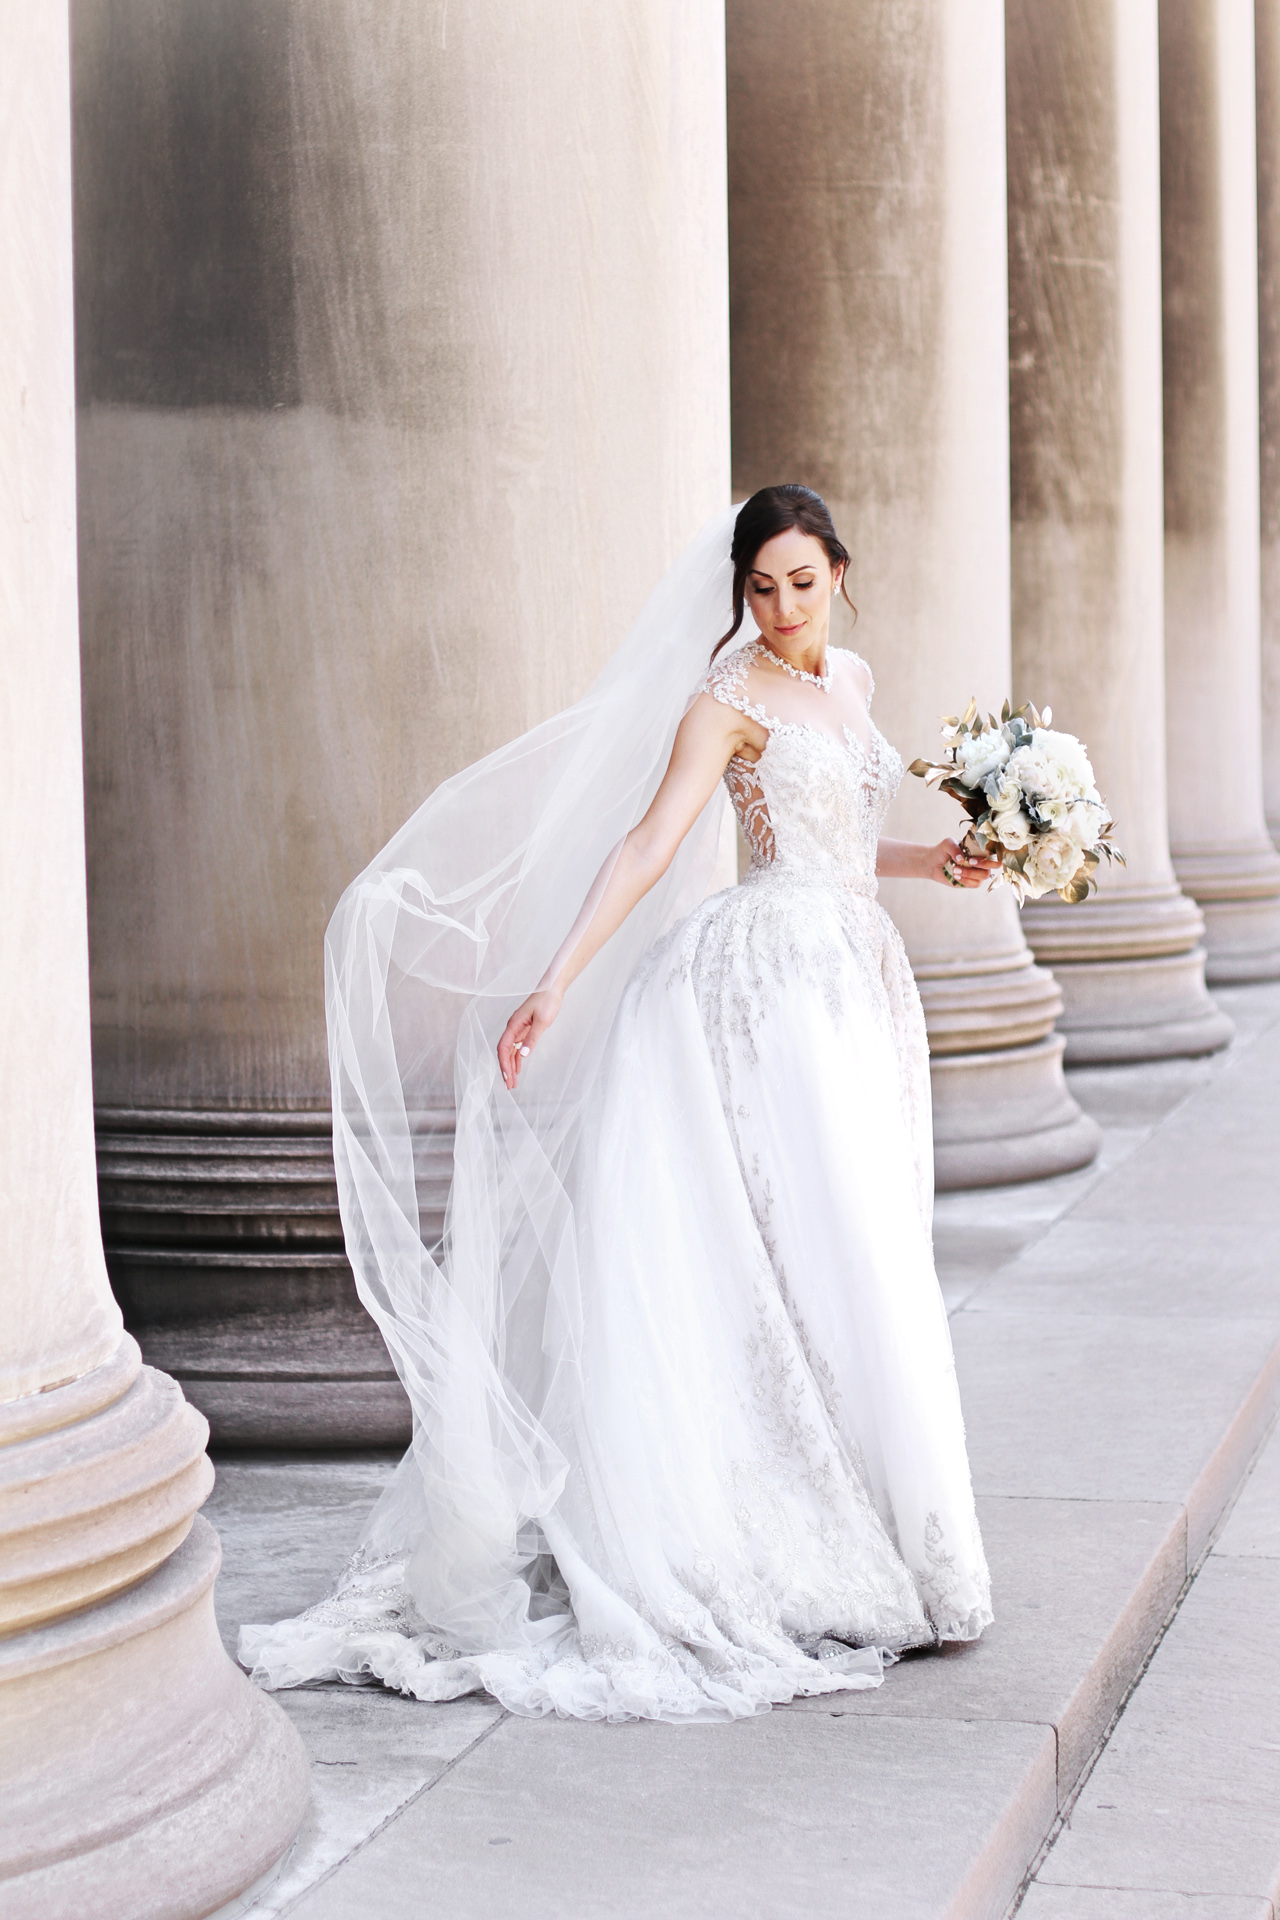 gorgeous bride at carnegie pillars in Pittsburgh, PA